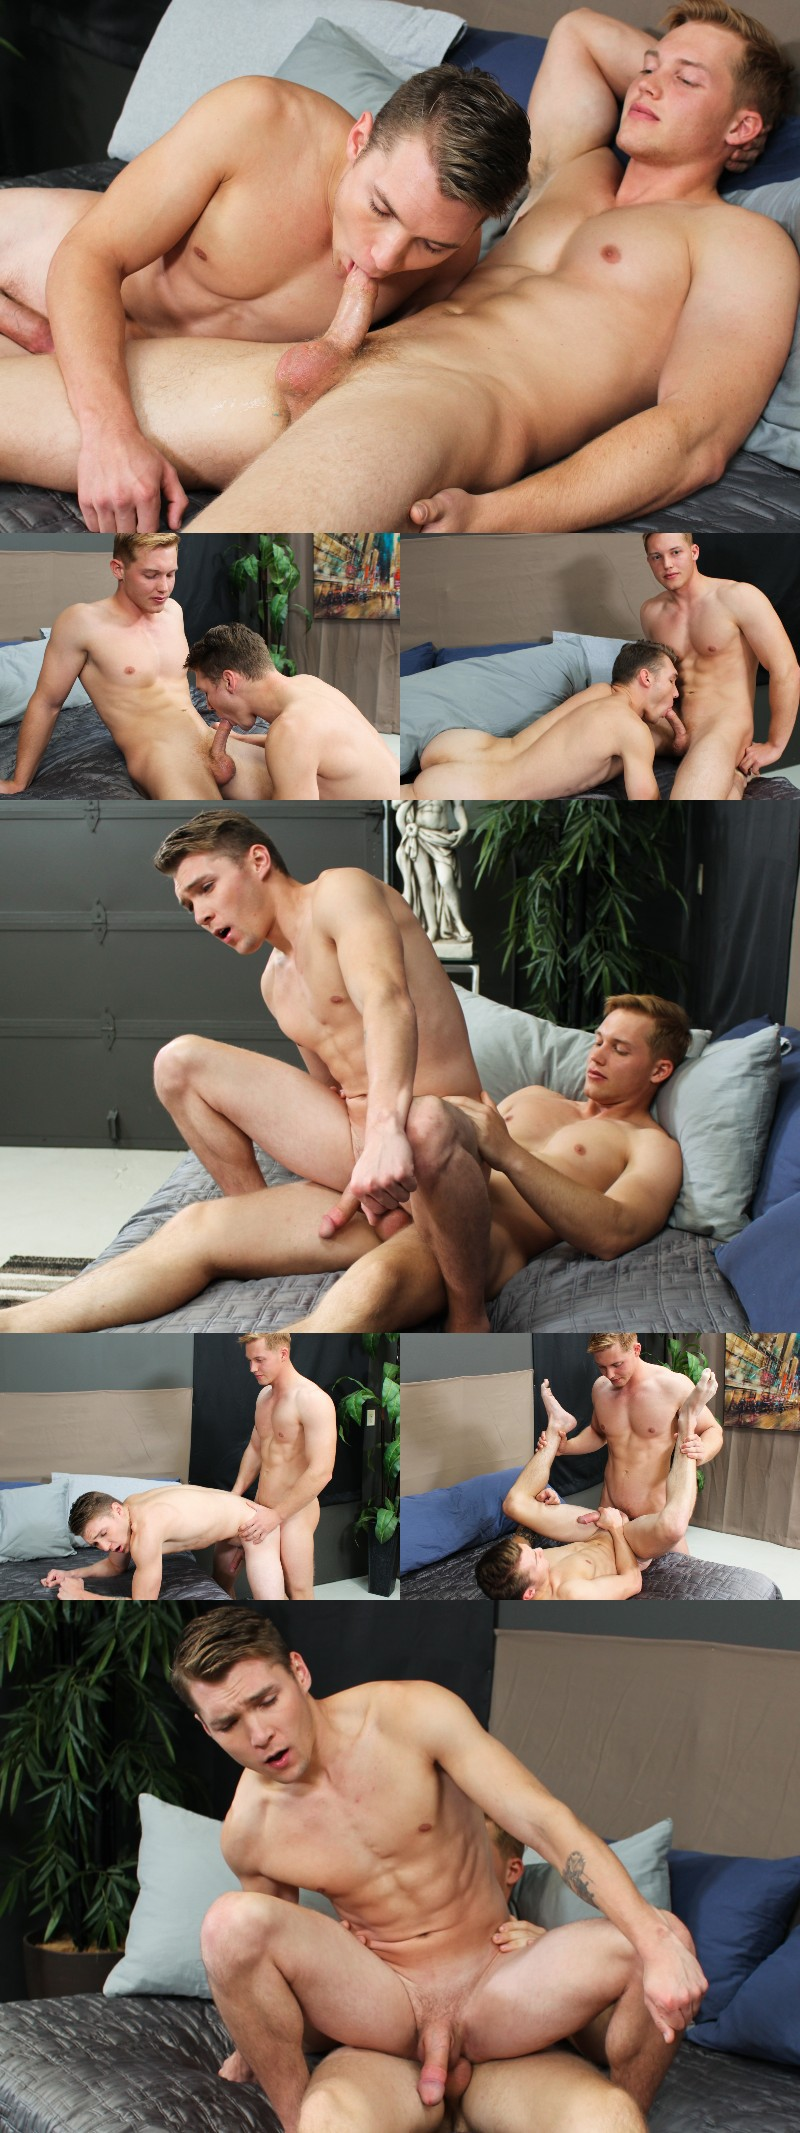 Straight Guy Jake Jordan Can't Take His Eyes Off His Dick Sliding in Elye Black's Hole